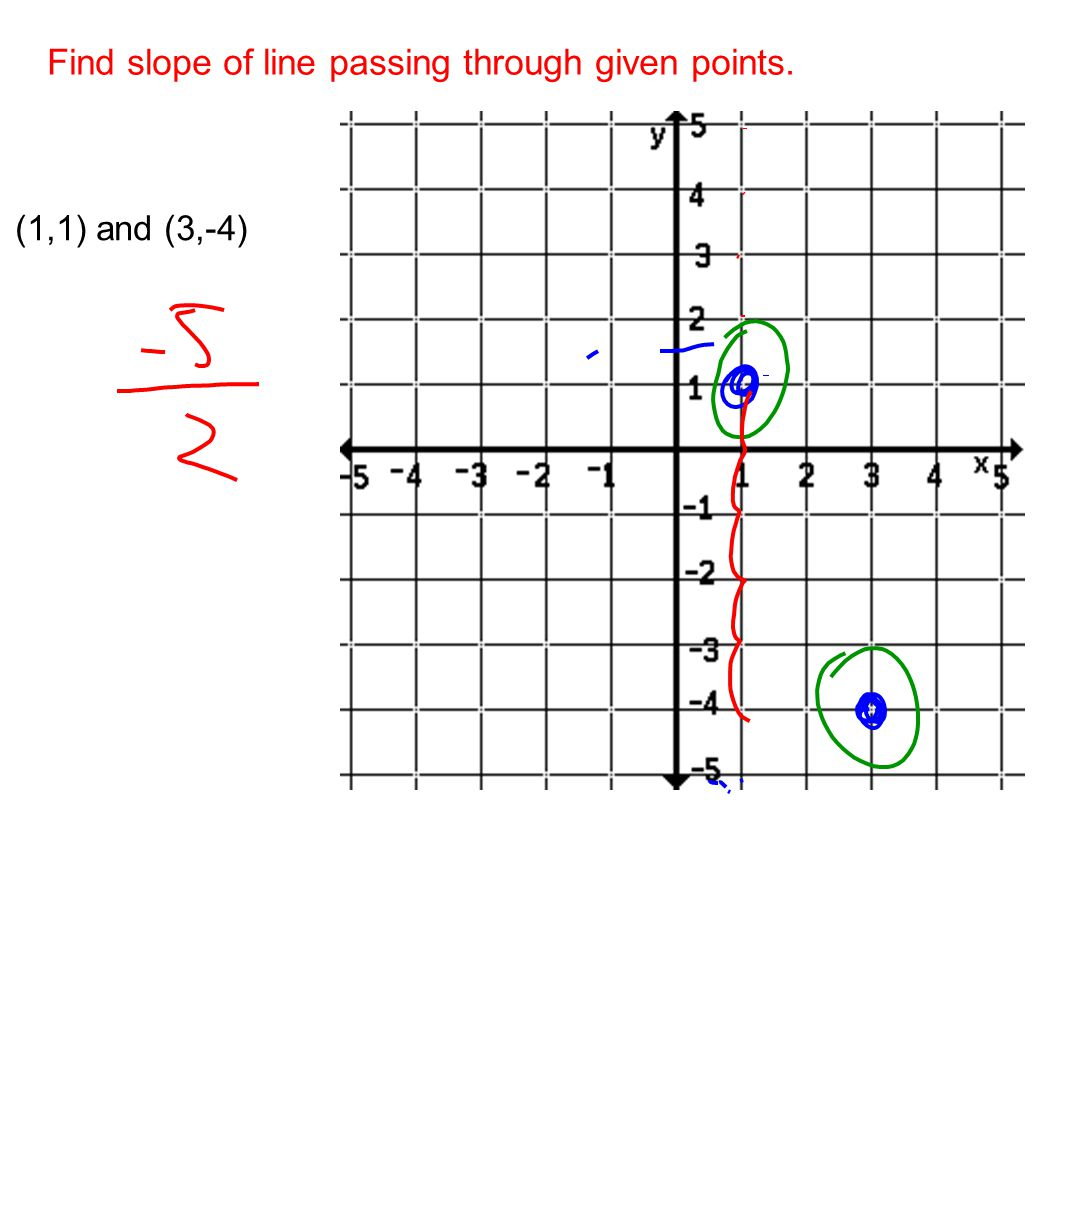 Find slope of line passing through given points.